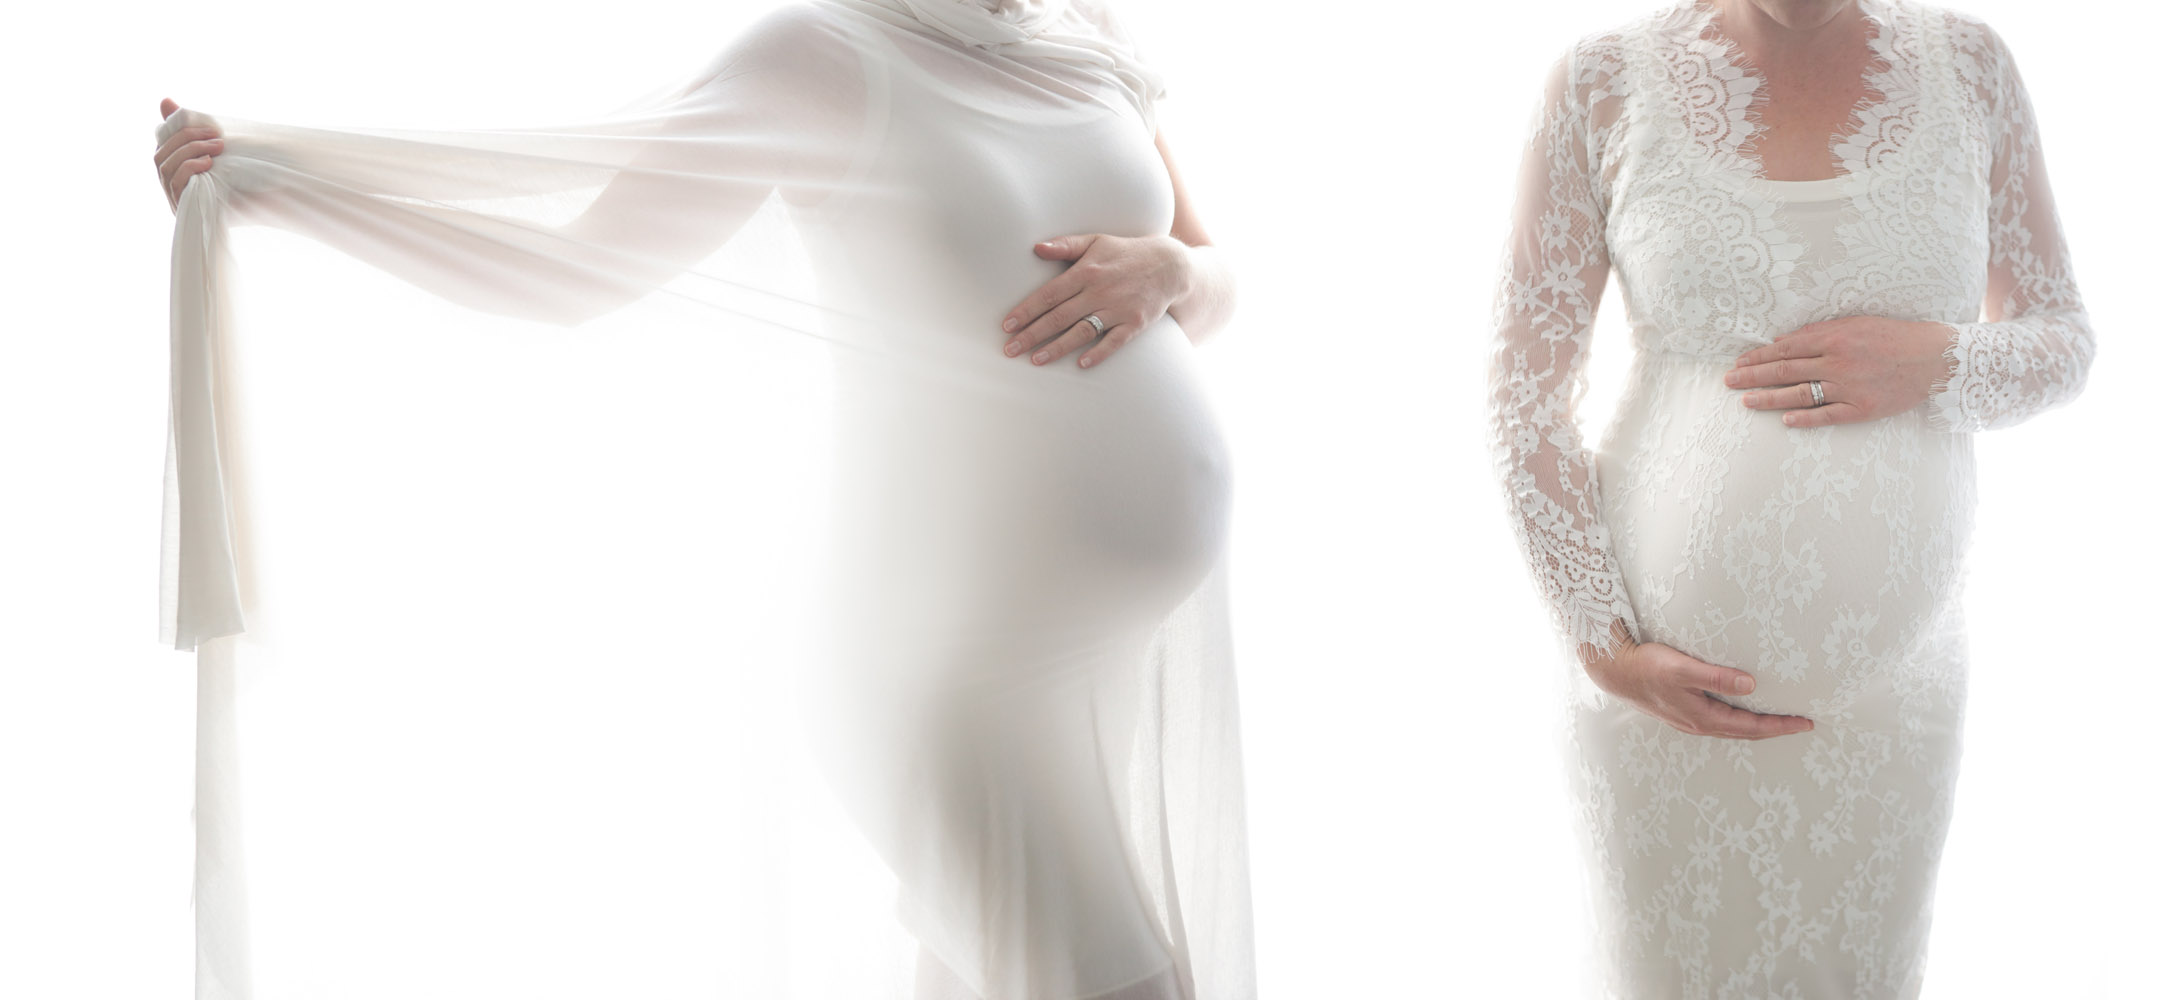 Dreamy backlit maternity photos with the most perfect bump! What's not to love?!